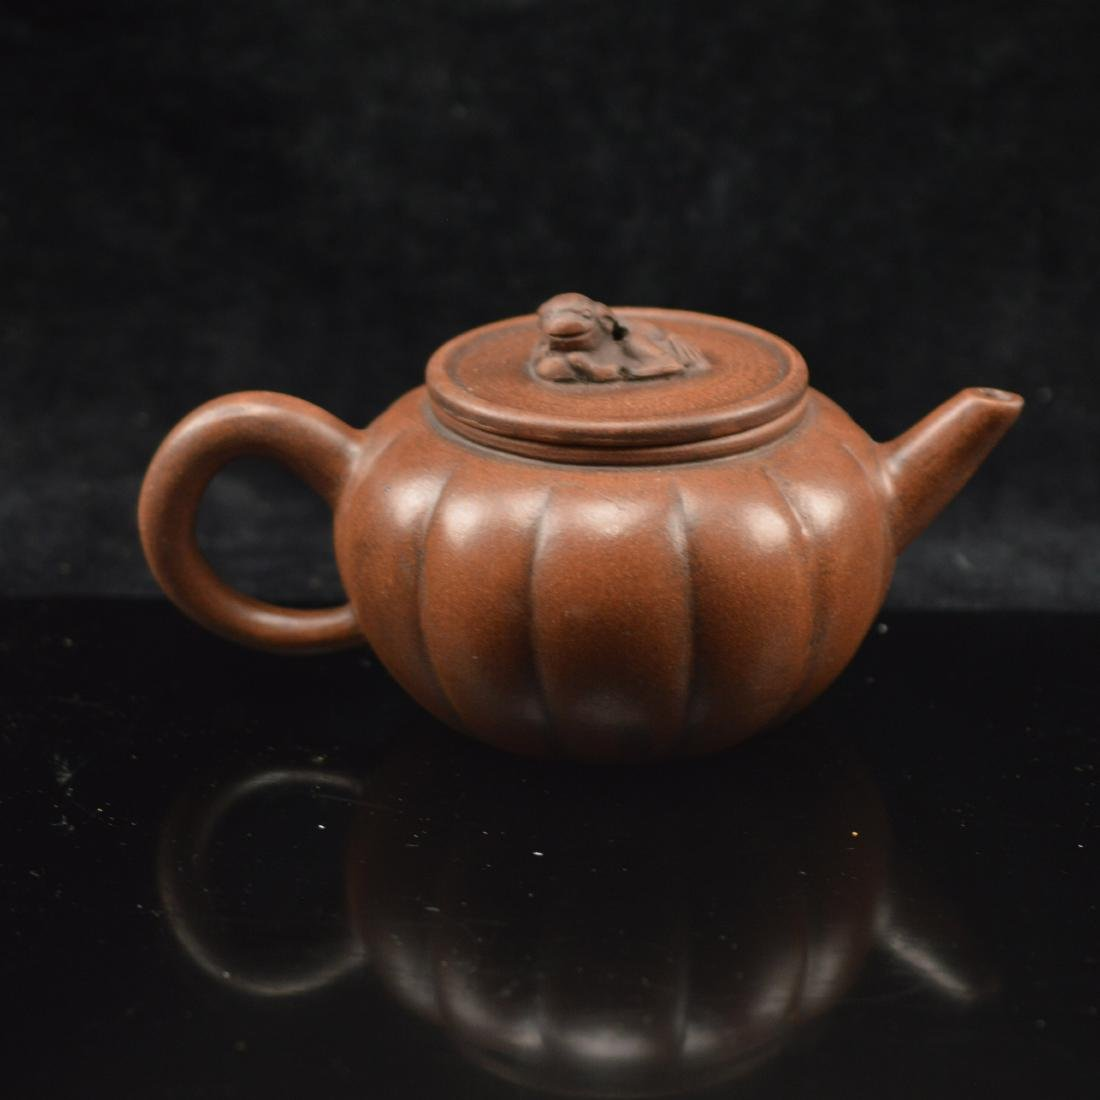 Gong Ju Marked Zisha teapot